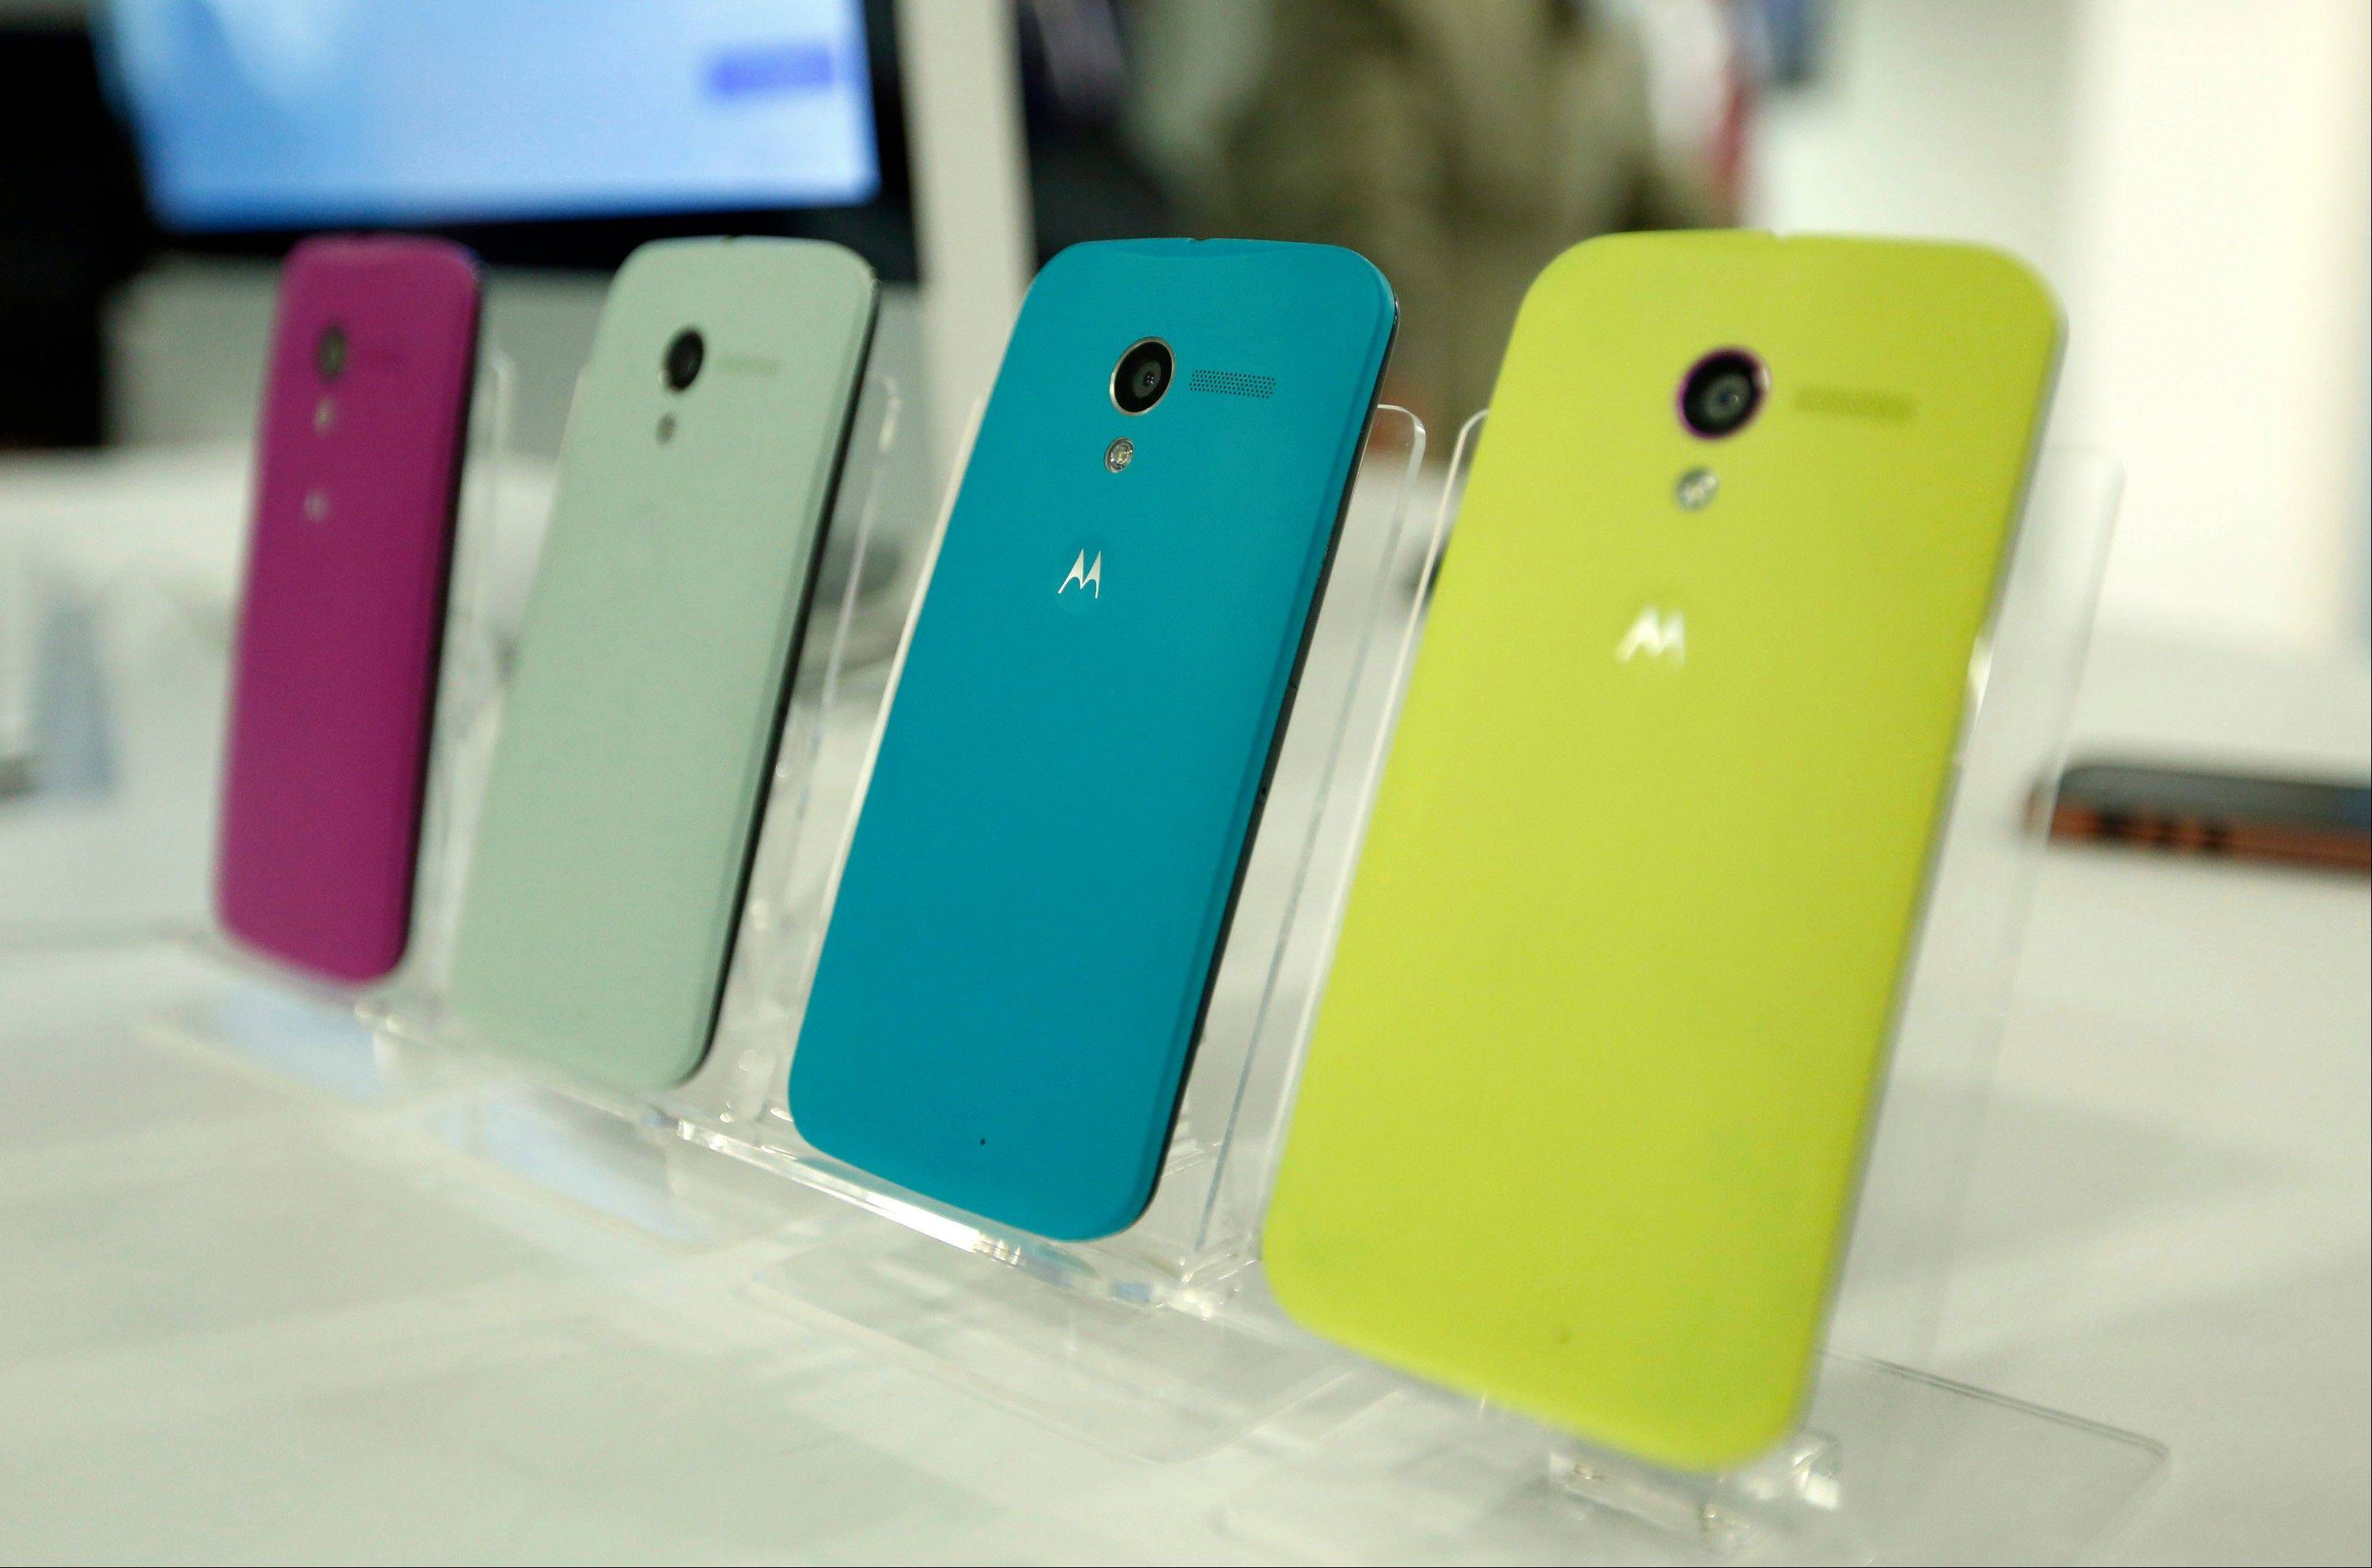 Google Inc.'s sale of Motorola Mobility holds a clear lesson for Microsoft Corp.'s acquisition of another smartphone maker, Nokia Oyj: Be a hardware or software company, not both.